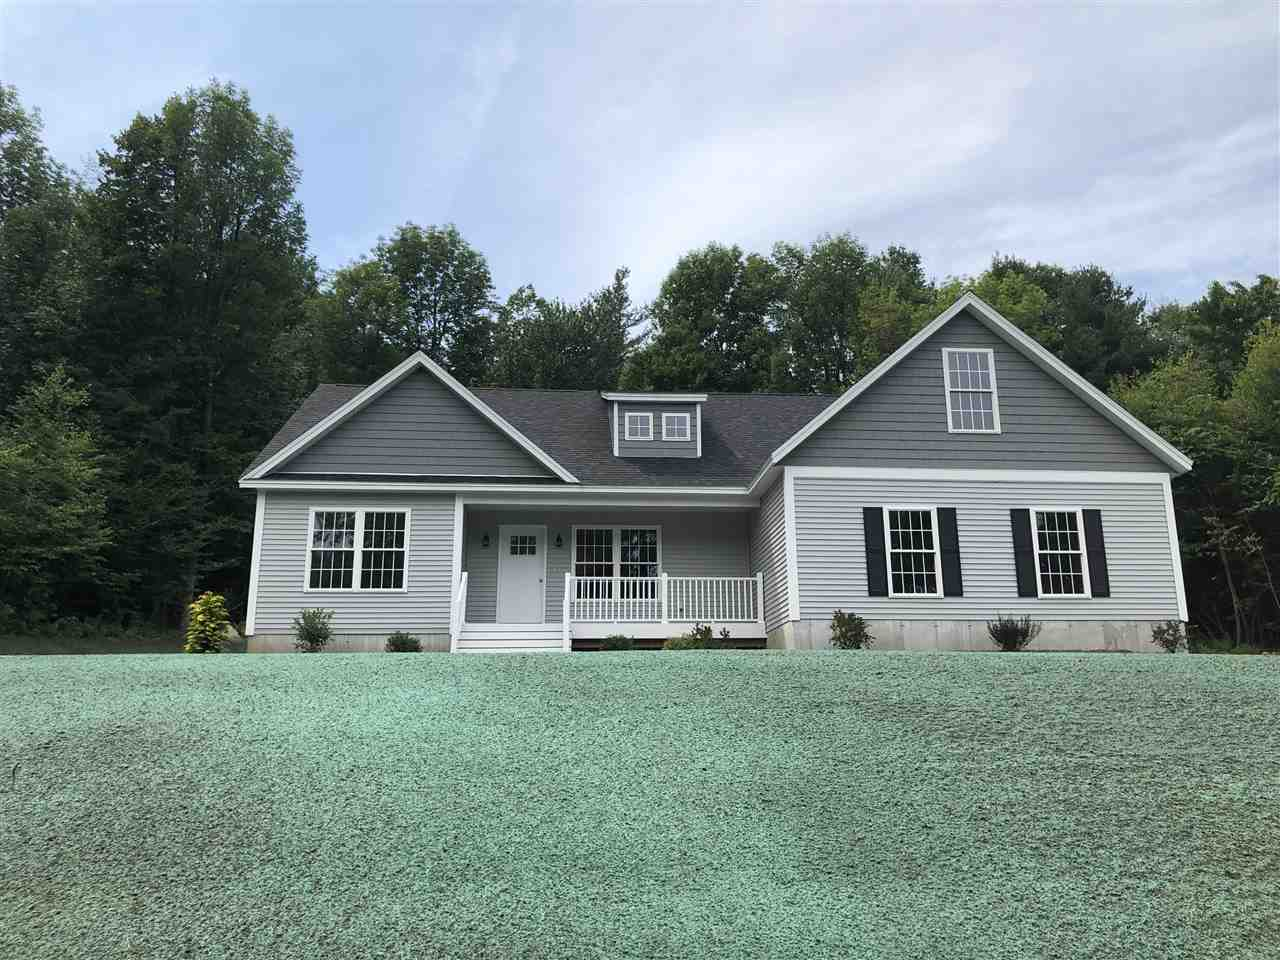 20 Vista Drive New Ipswich Nh Monadnock Region